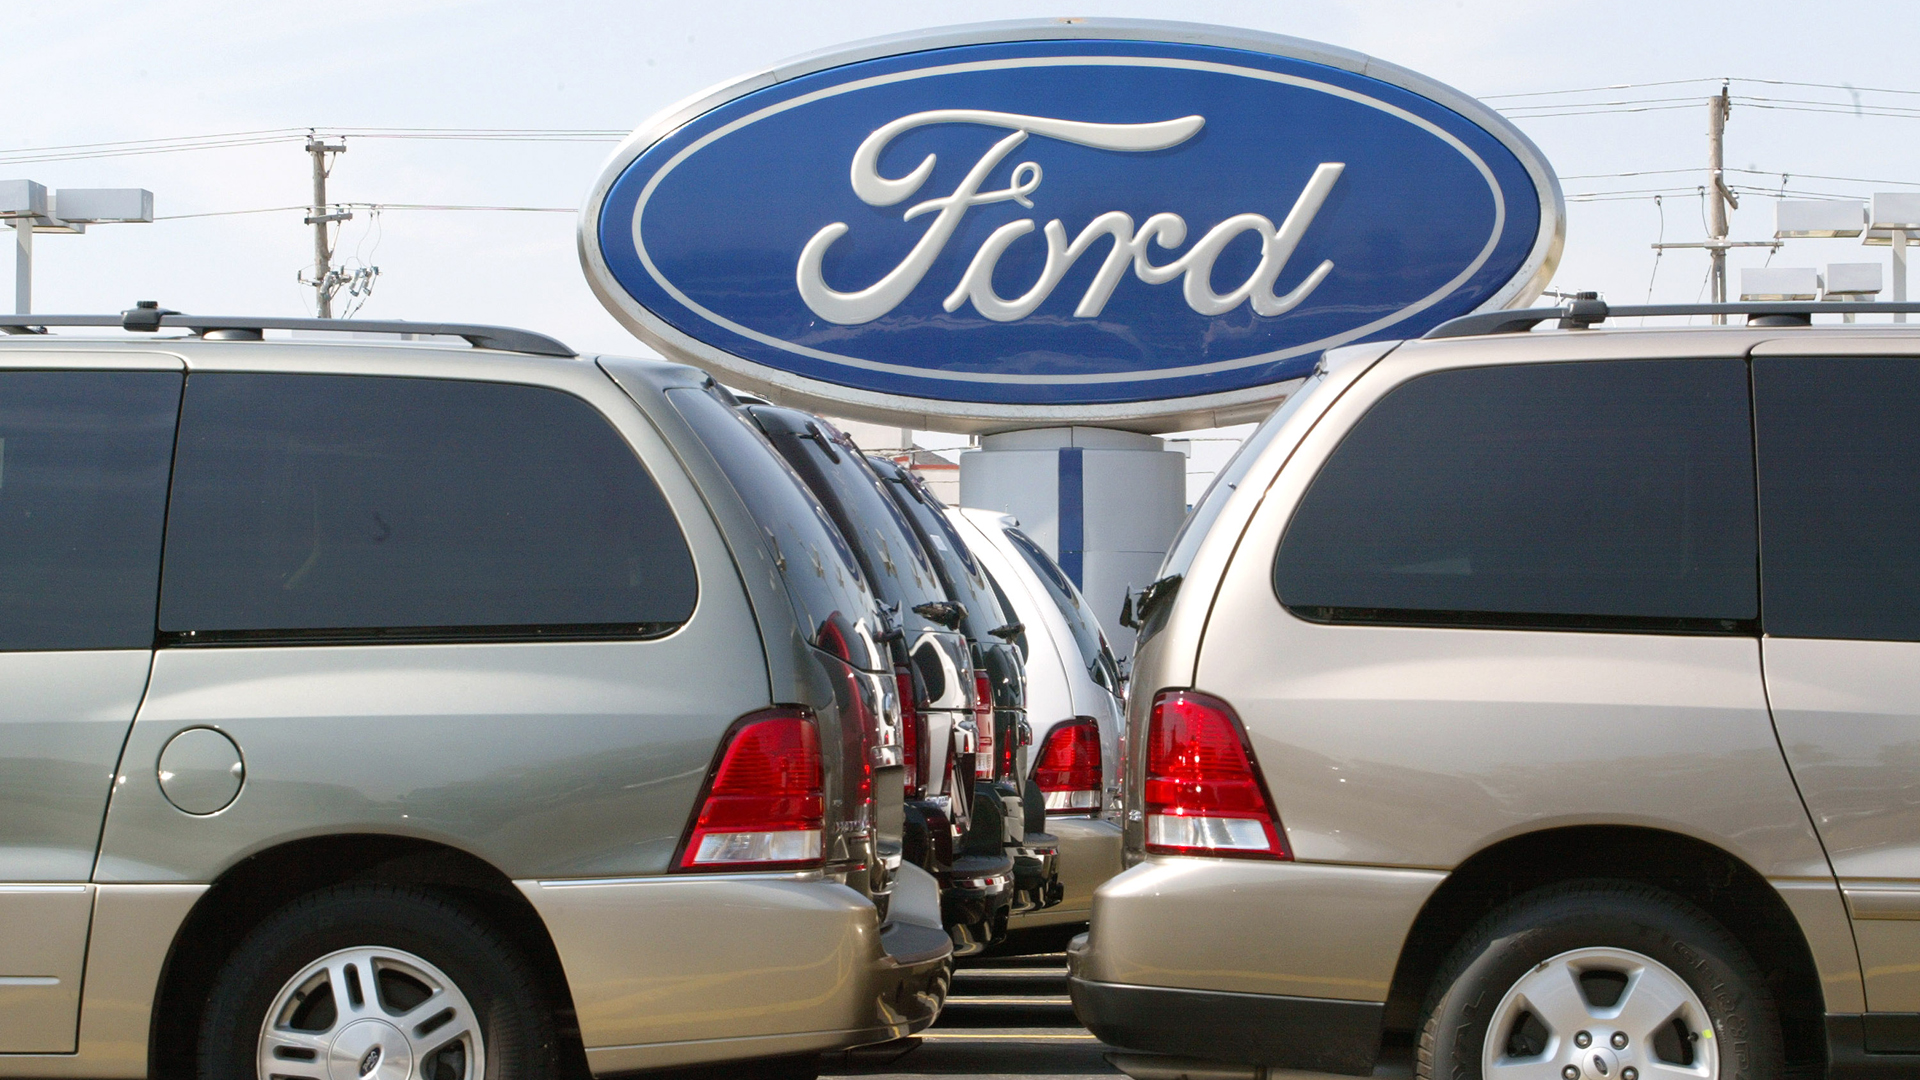 Ford is among the auto companies being investigated in the antitrust probe, as are BMW, Volkswagen and Honda. (Credit: Tim Boyle/Getty Images)